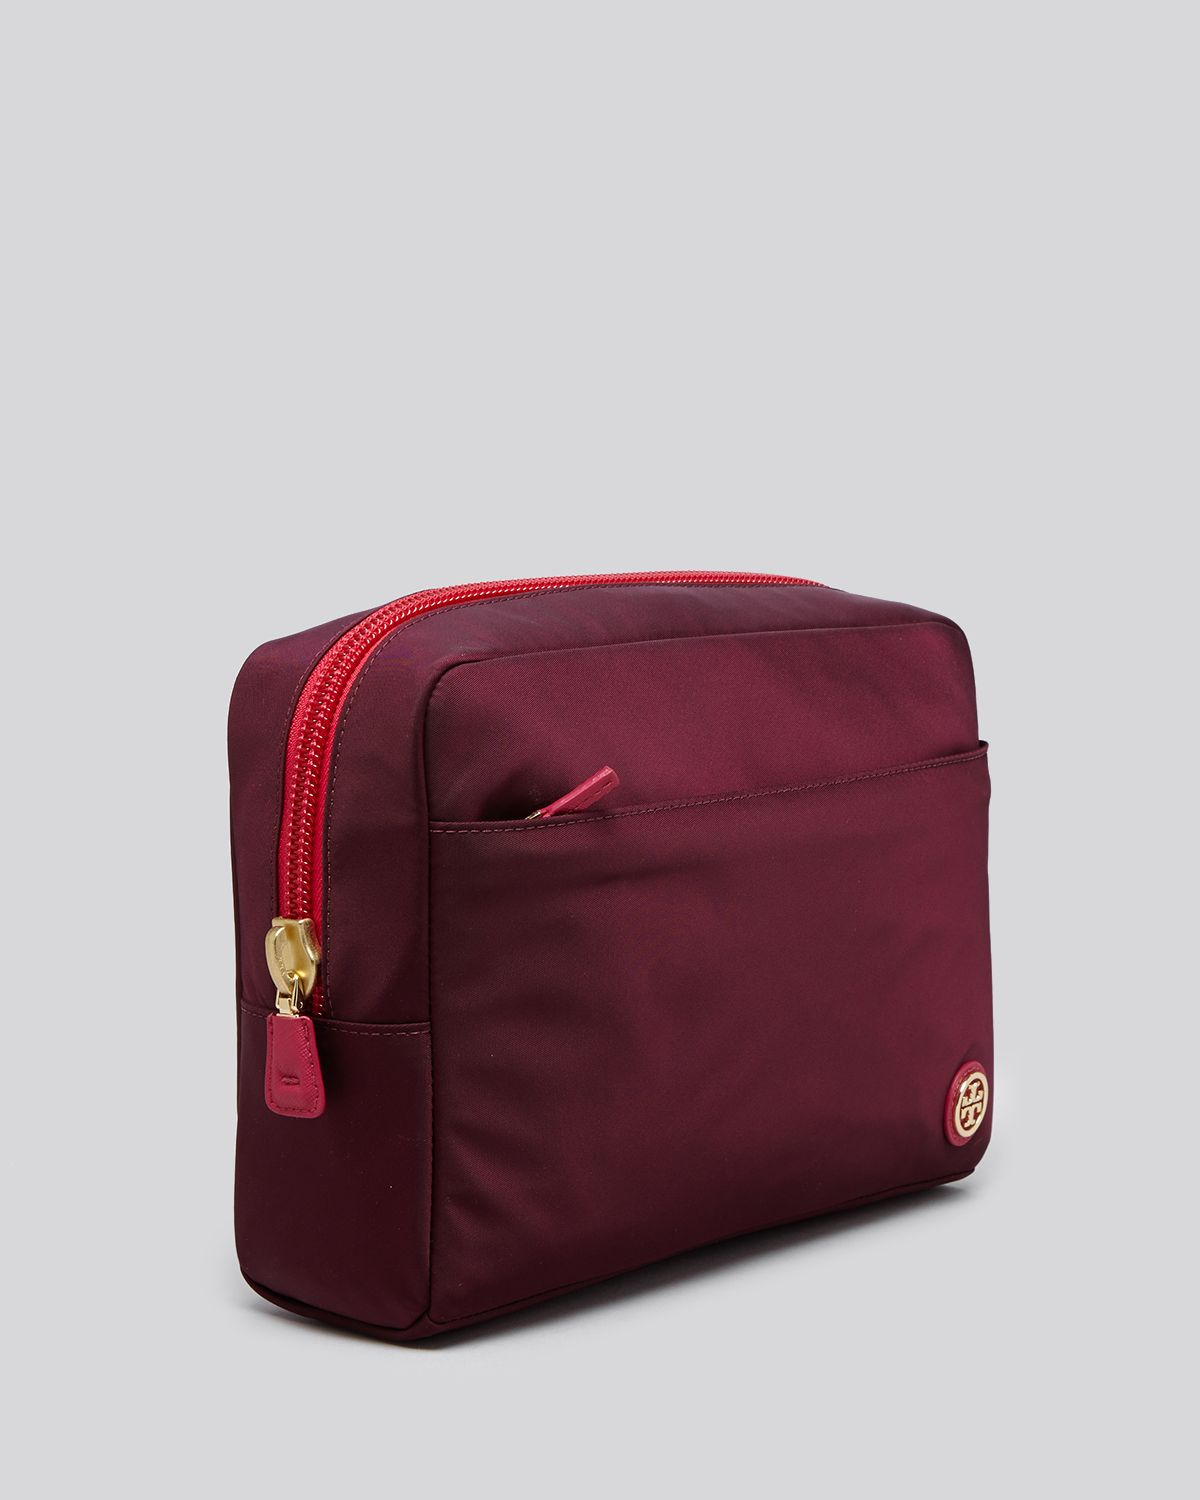 Tory Burch Cosmetic Case Travel Nylon Large Red Lyst